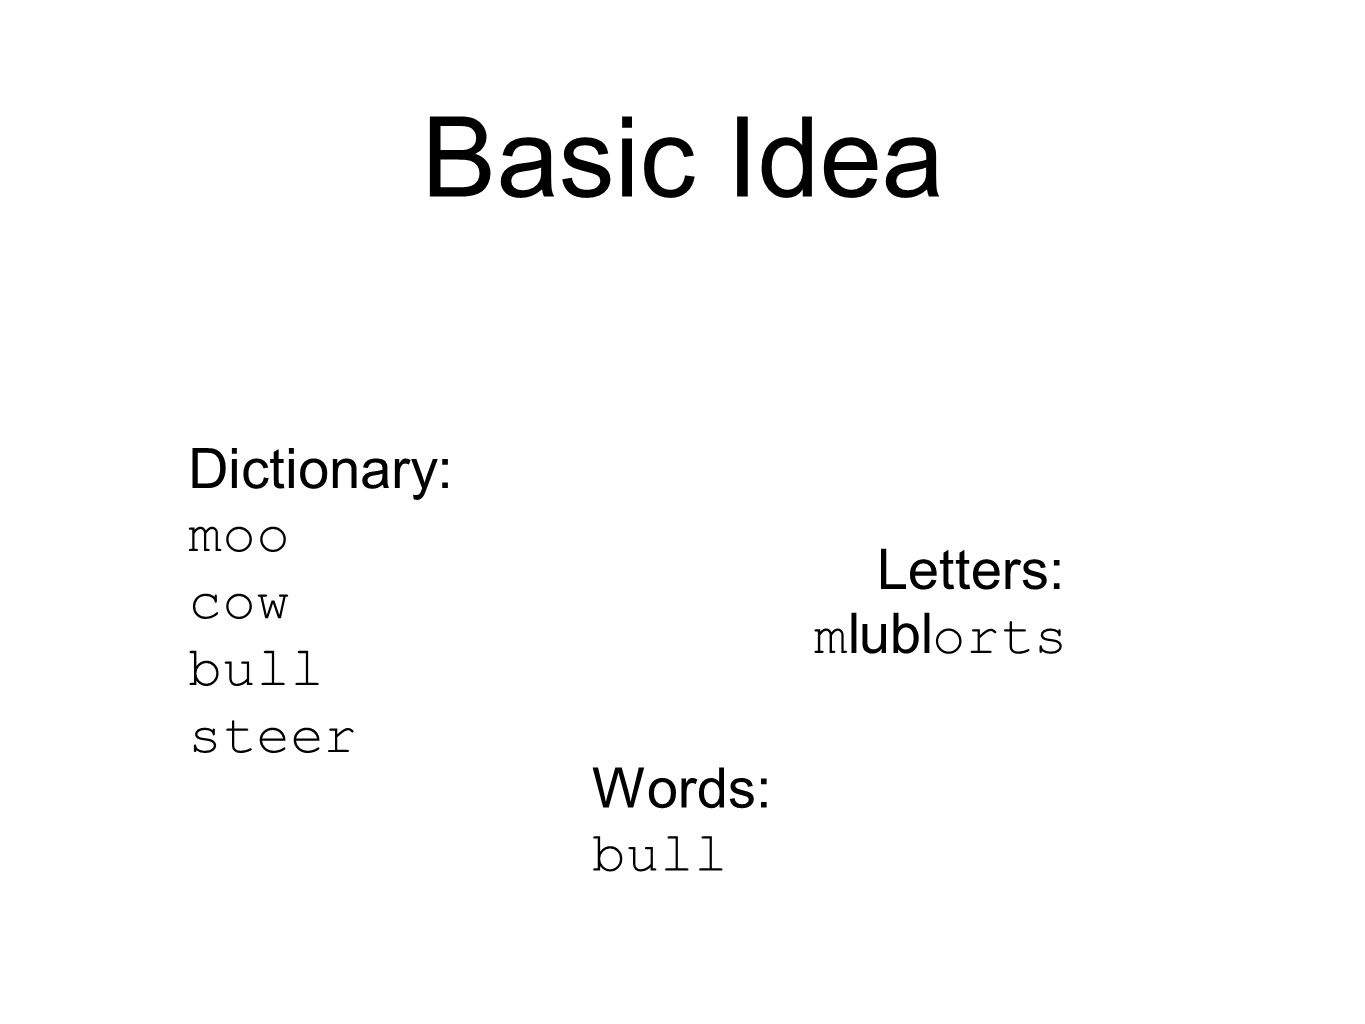 Basic Idea Dictionary: moo cow bull steer Letters: m lubl orts Words: bull